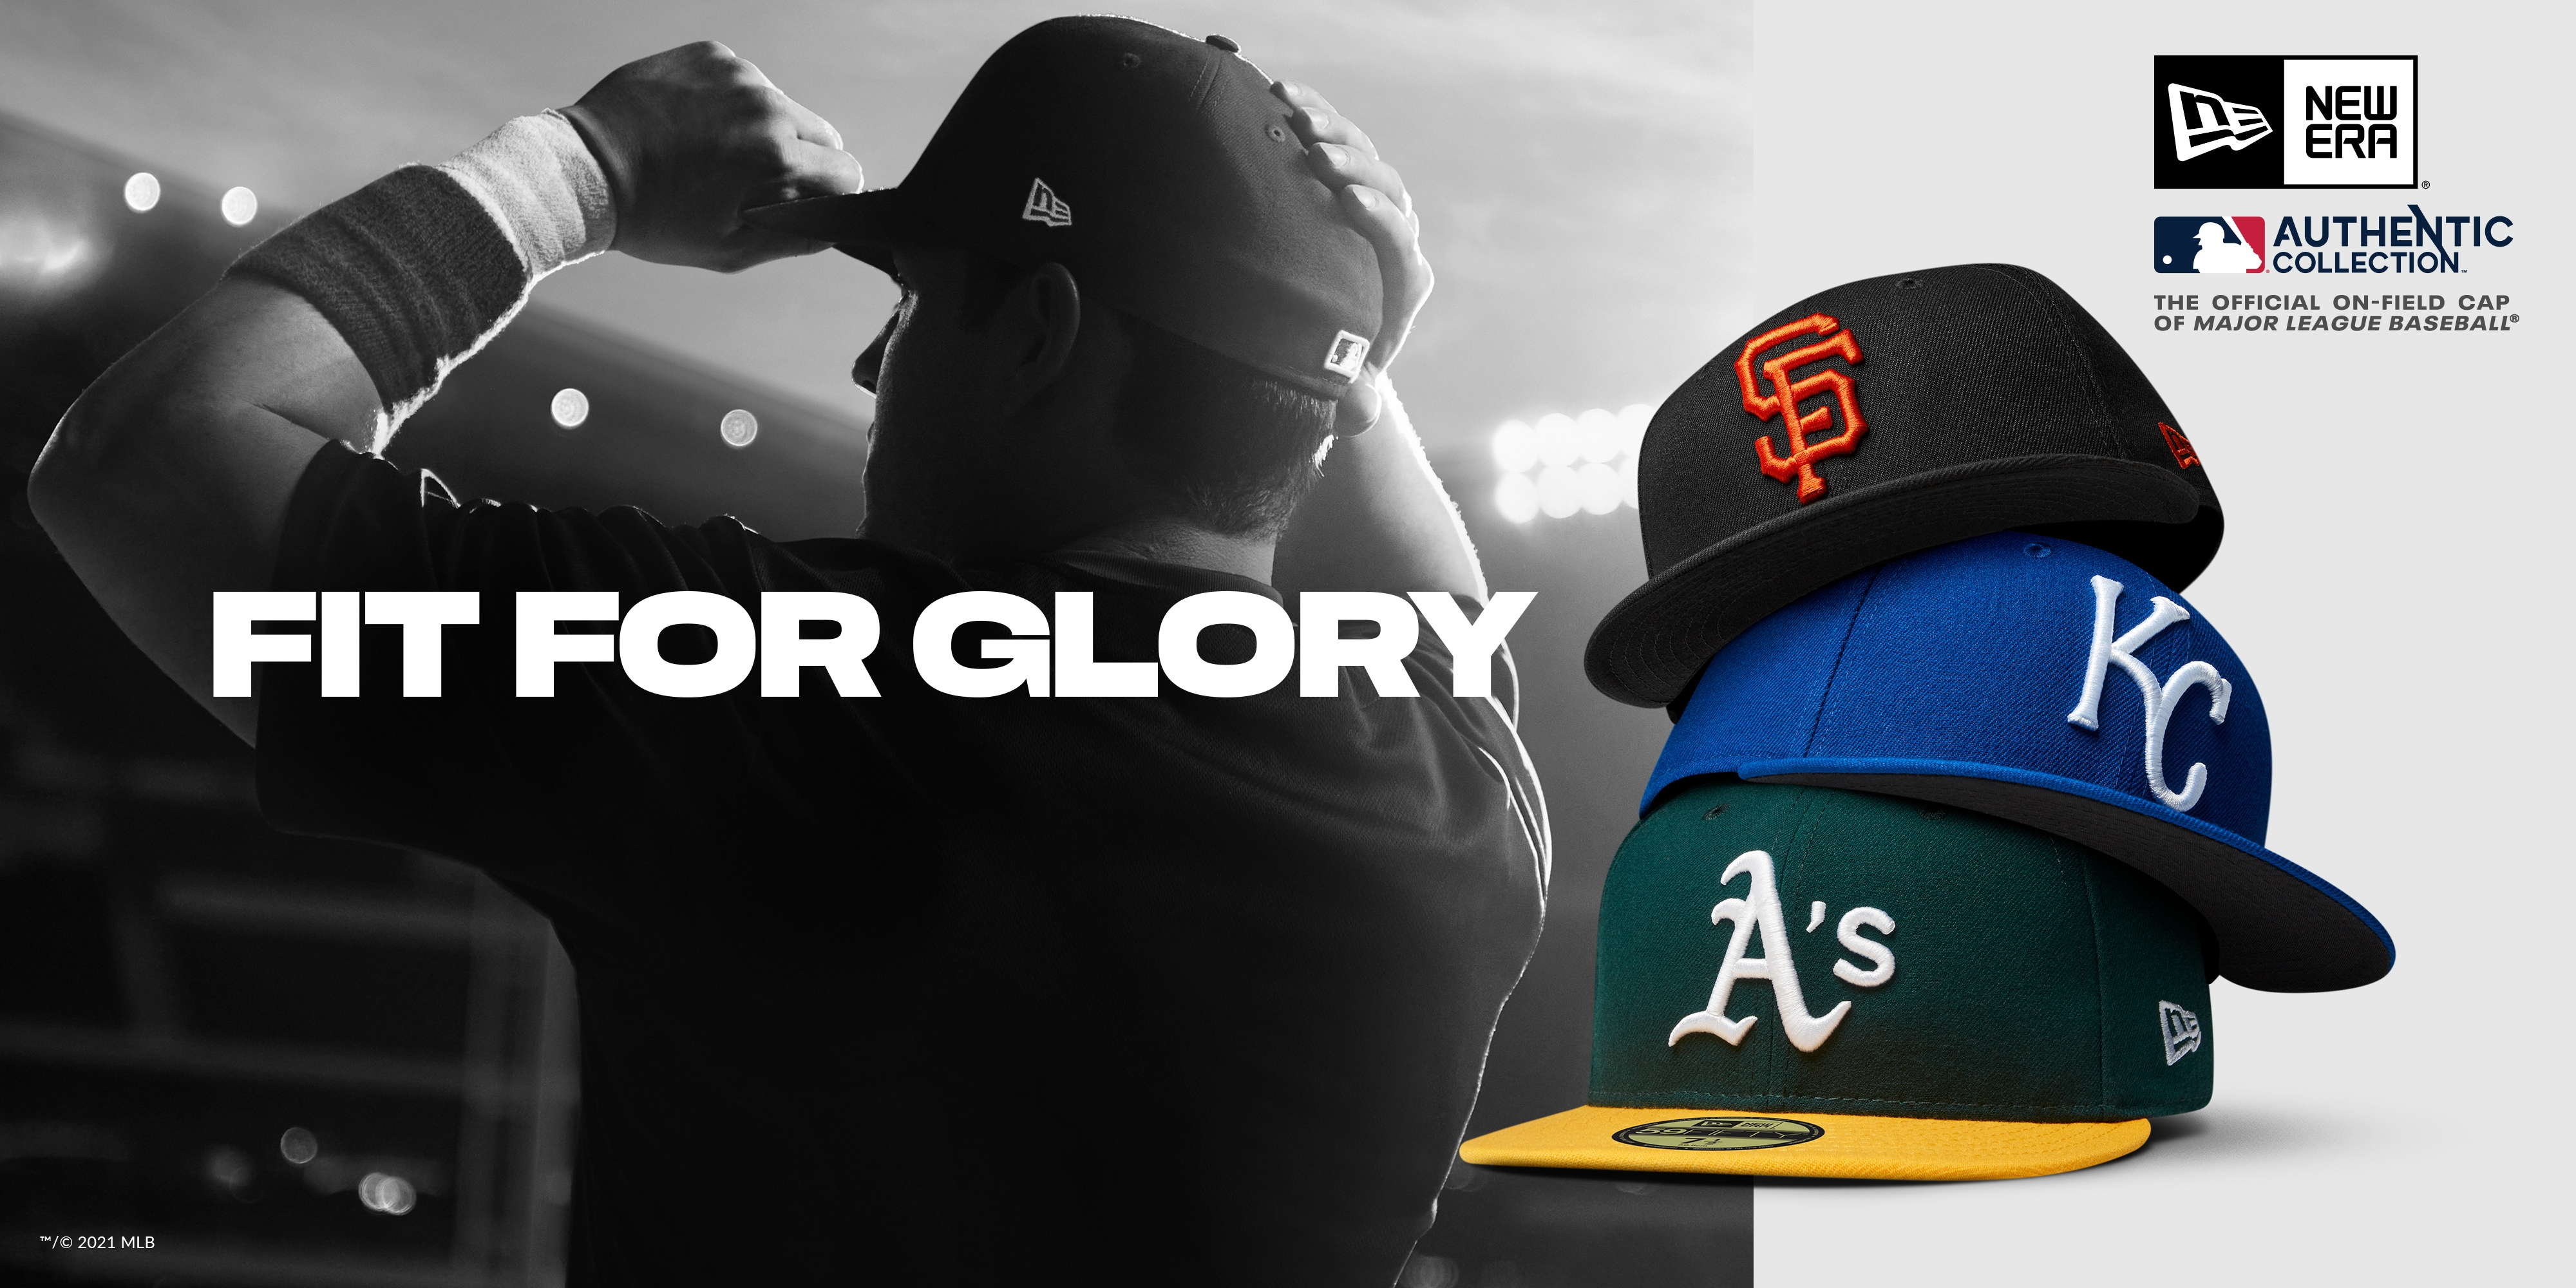 New Era Cap | Shop MLB Fitted Authentic Collection